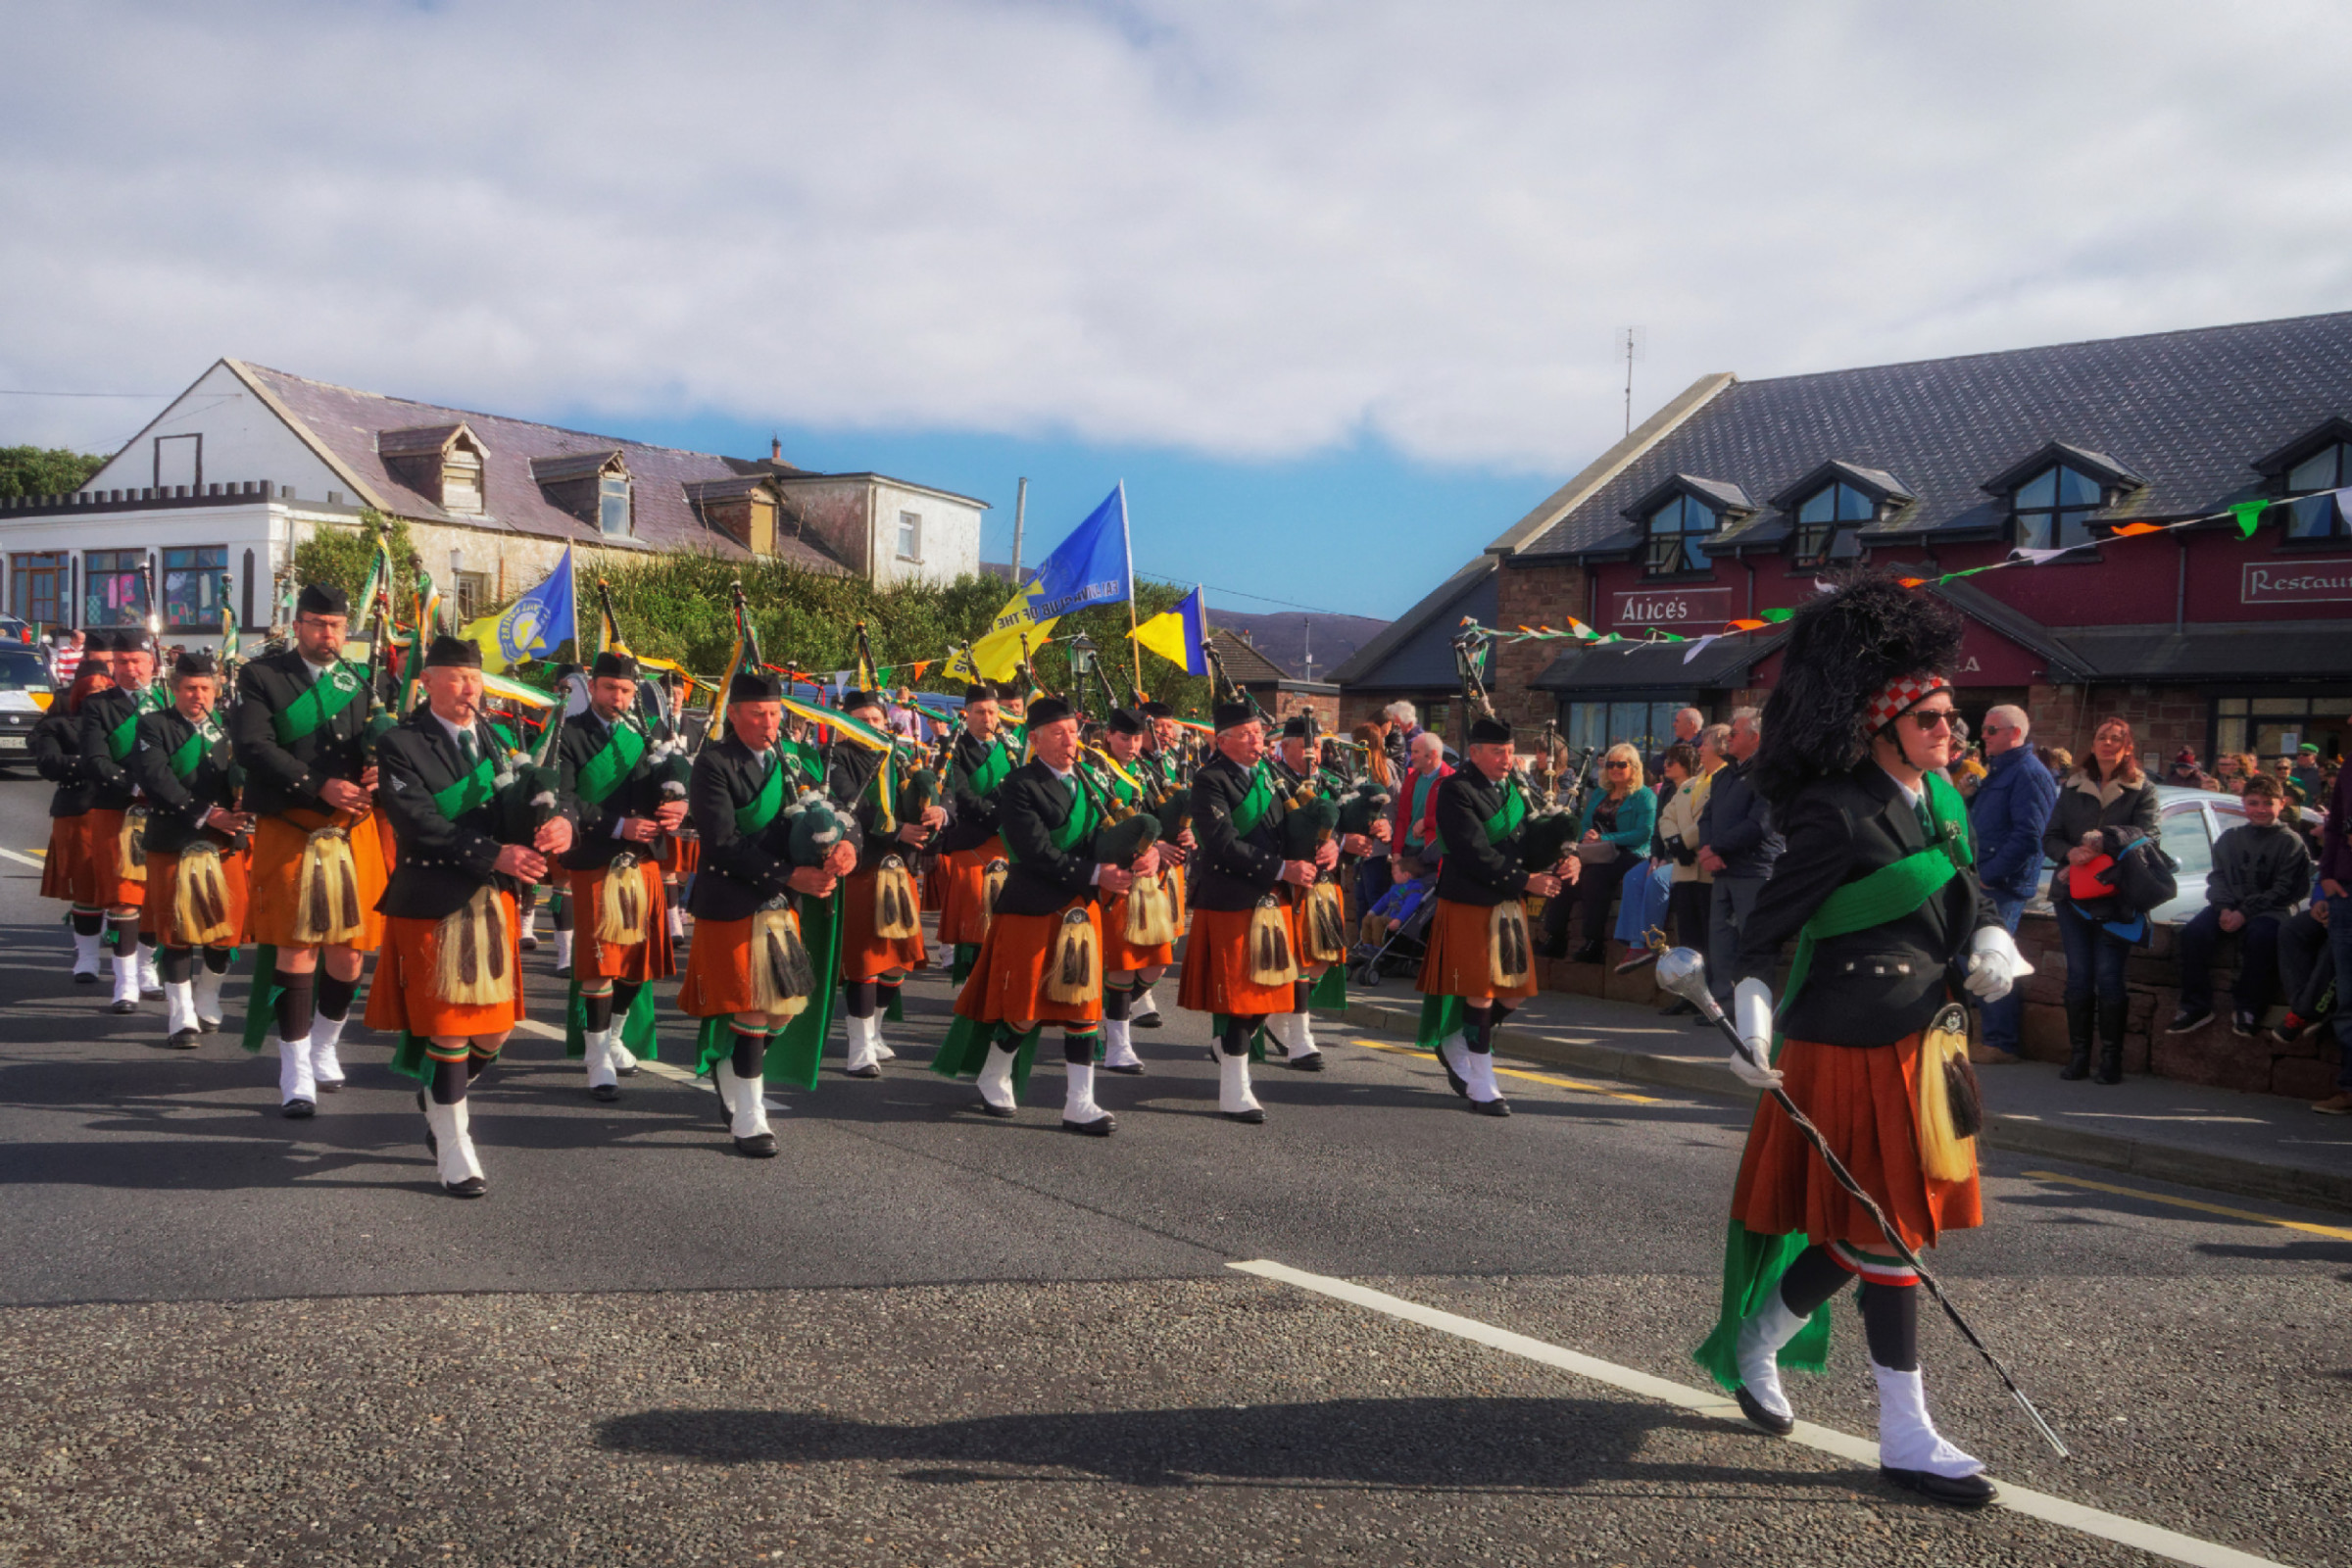 20160320125615-ie-achill-sound_parade-_DxO_13in_DxO96